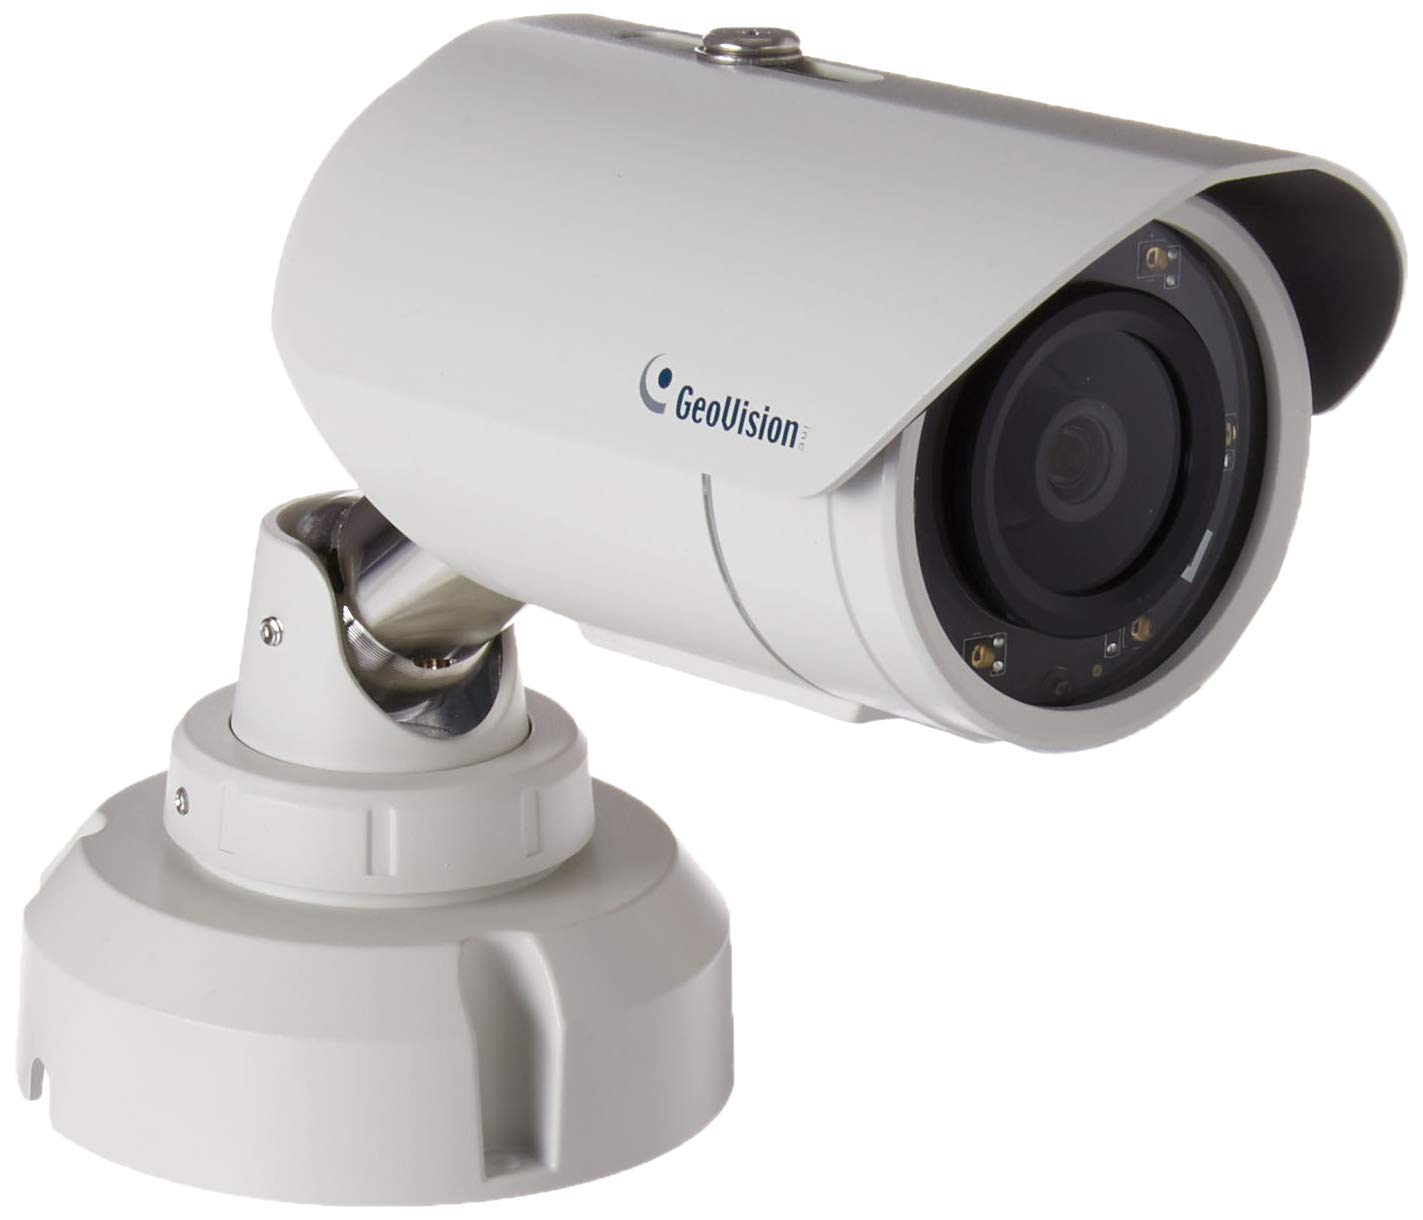 GeoVision 2MP H.265 3.8mm IR Bullet Camera, White GV-EBL2702-2F